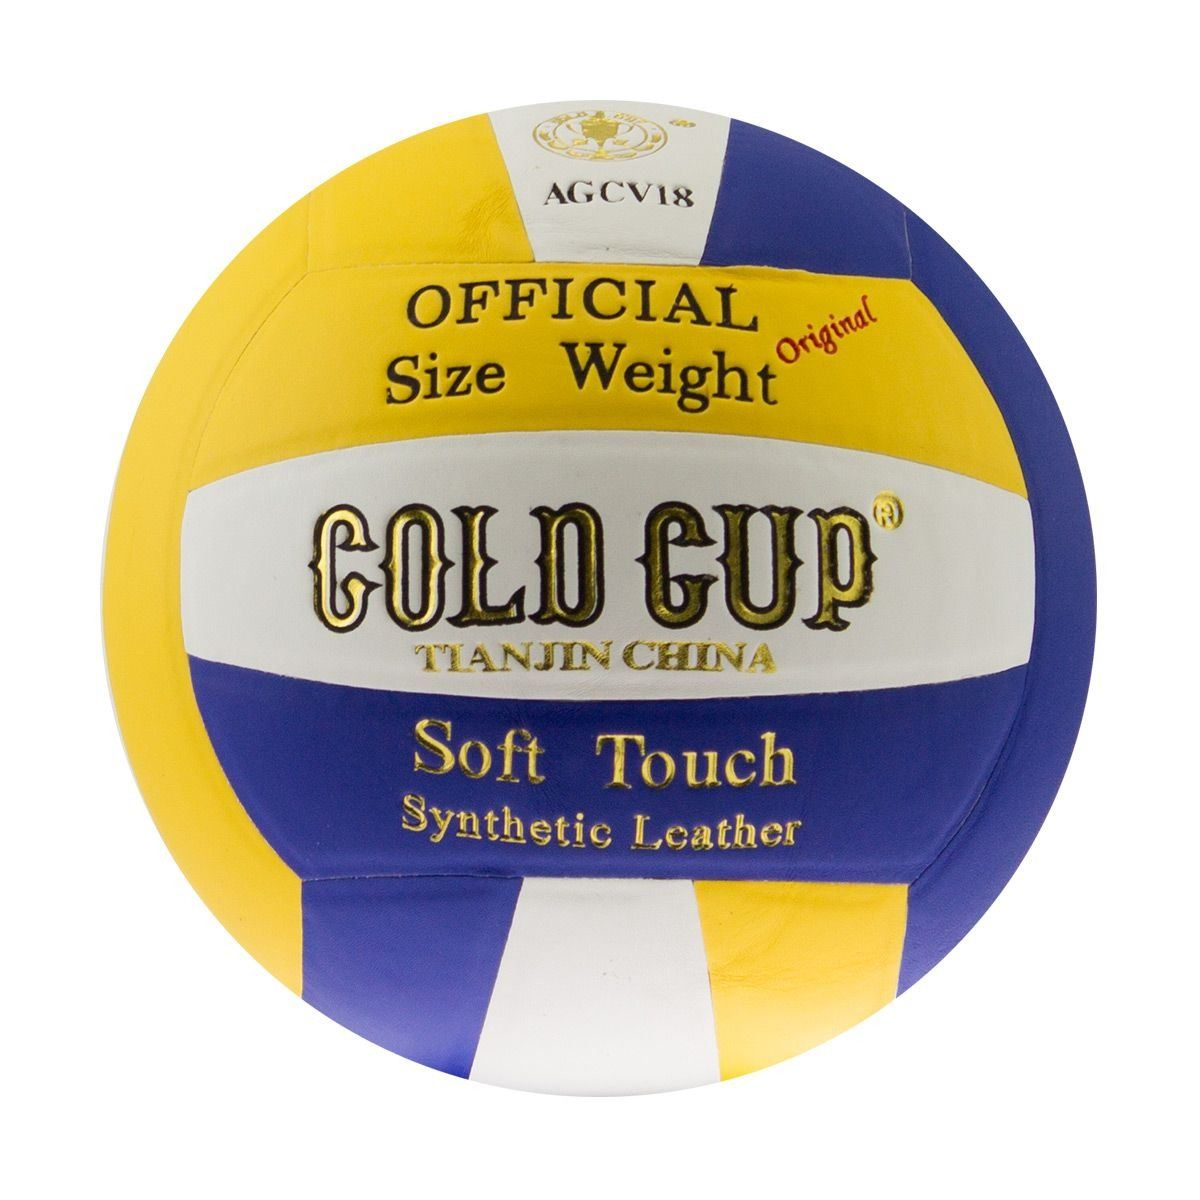 The Mikasa Gold Cup is the most durable volleyball. eight panel design allows the fingers more surface contact for better sets and passing.